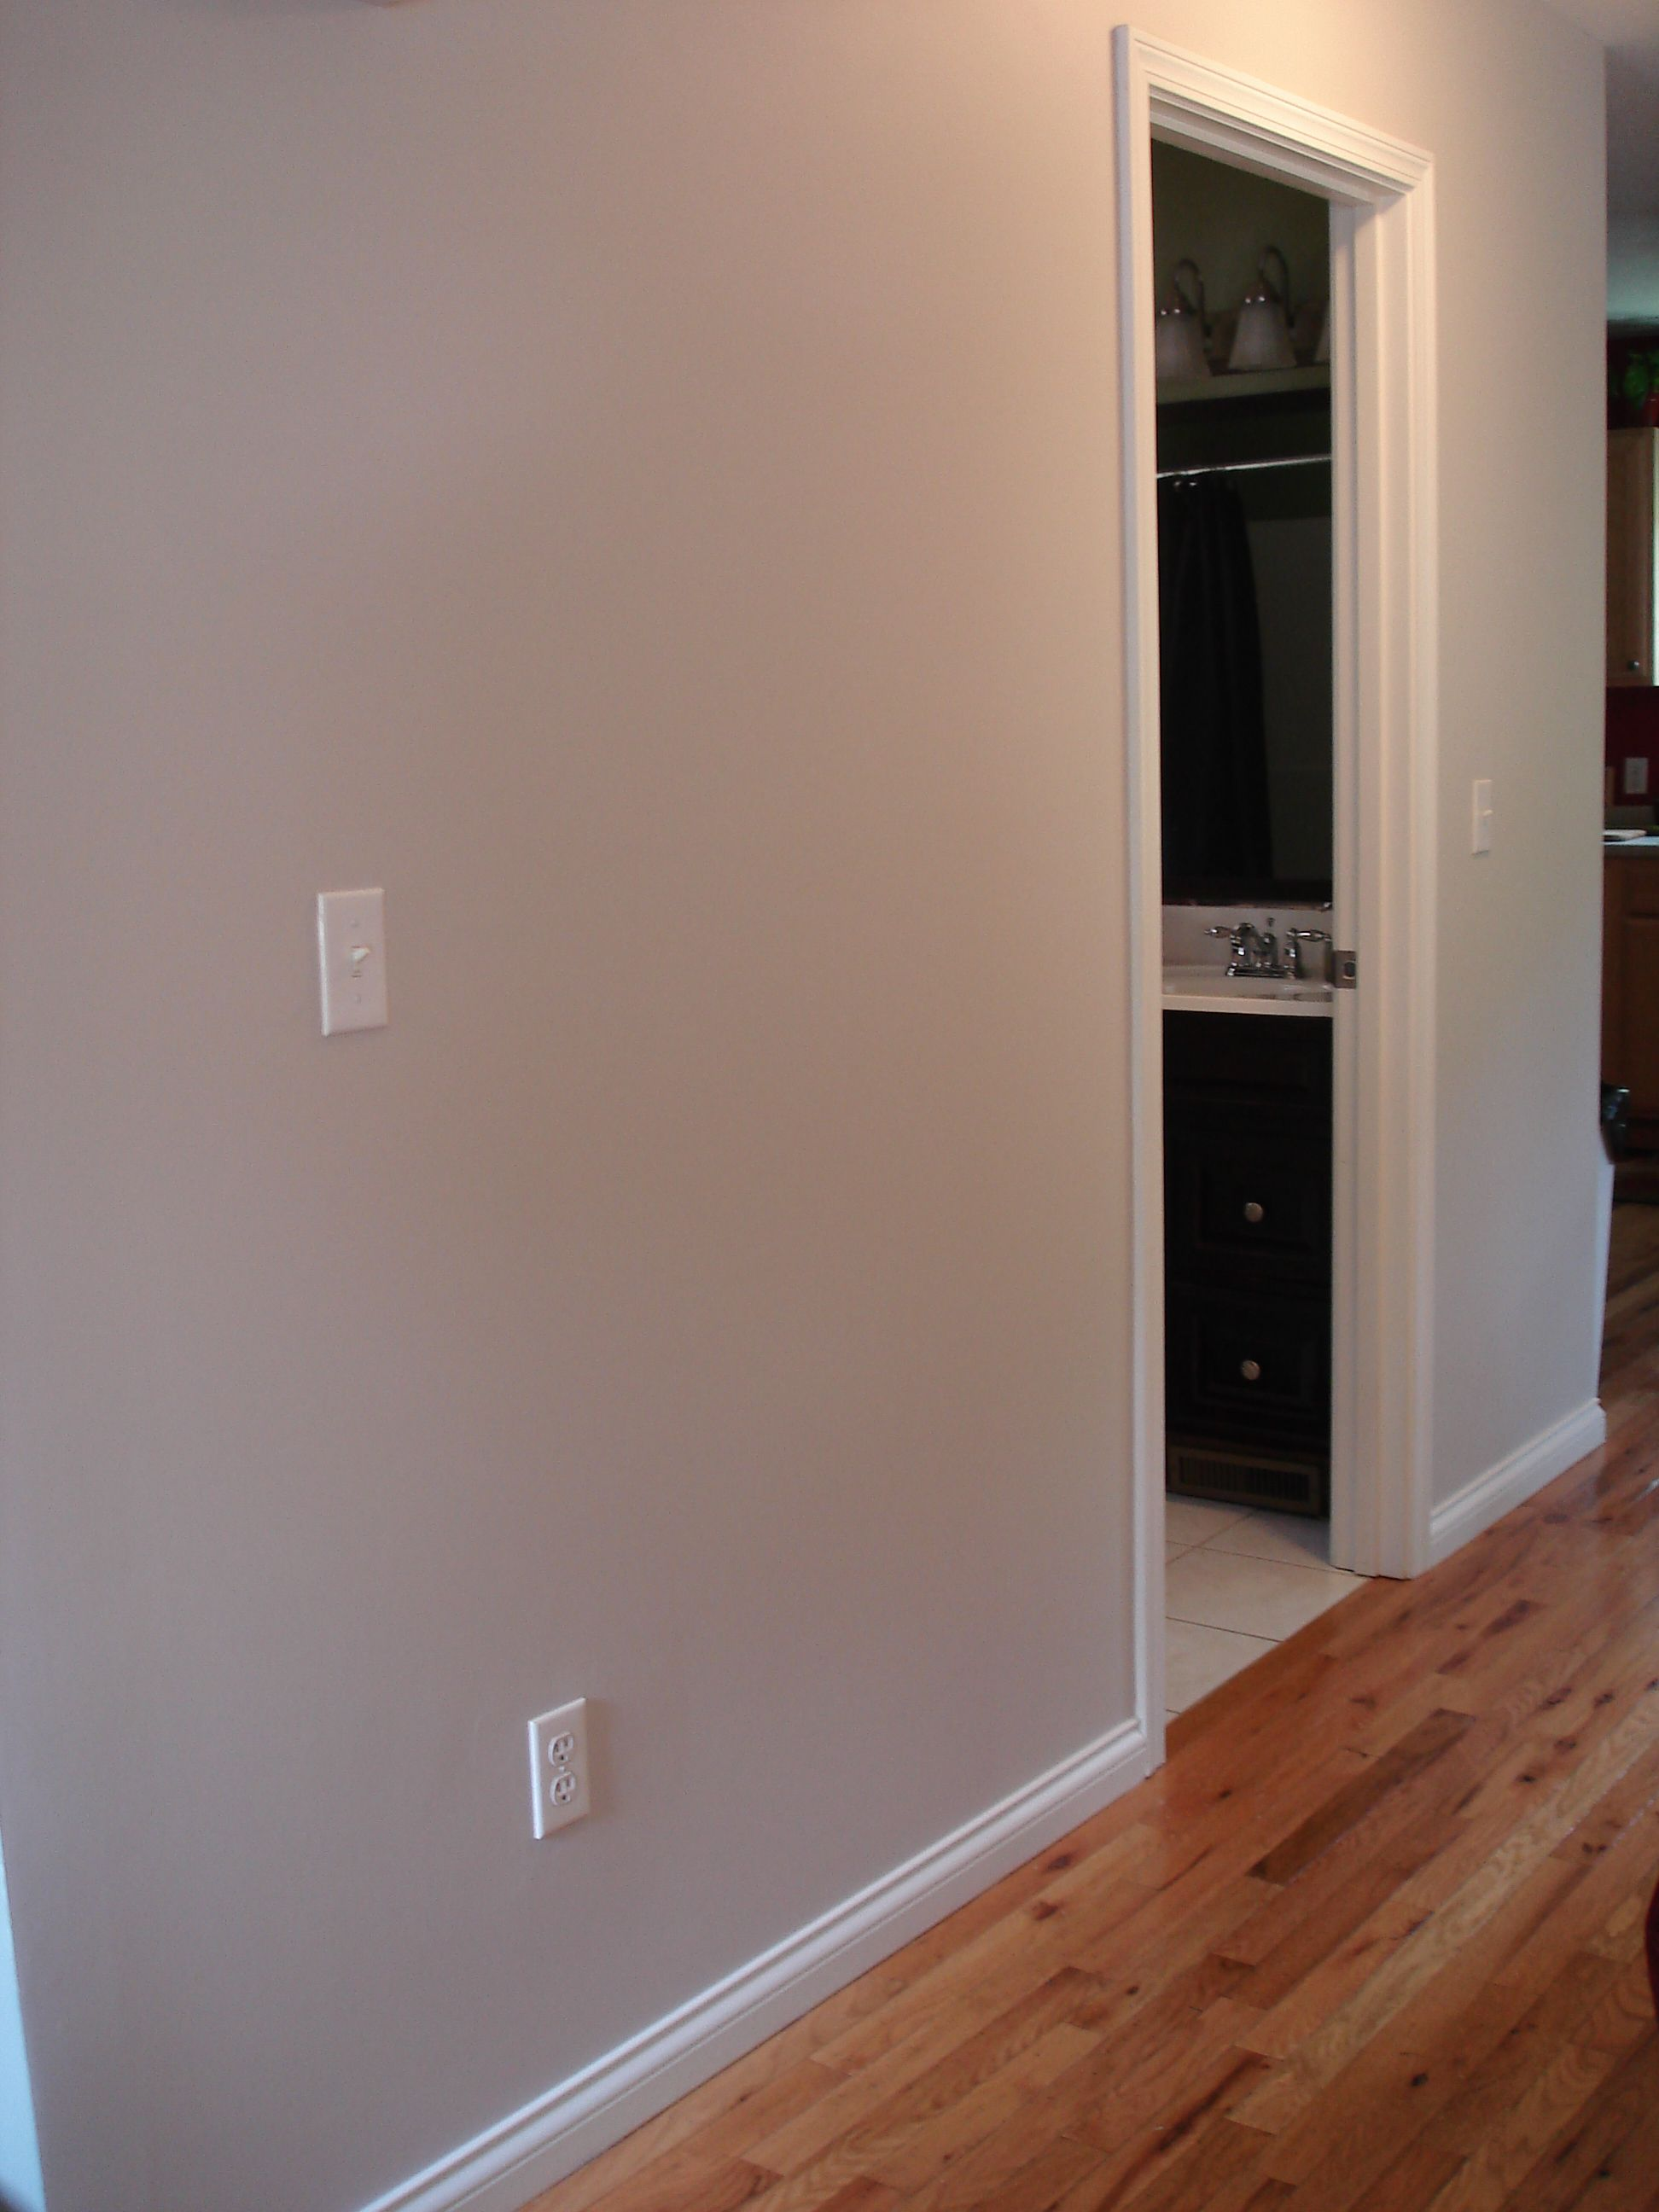 Wall Color Burnished Clay From Behr Kids Bath